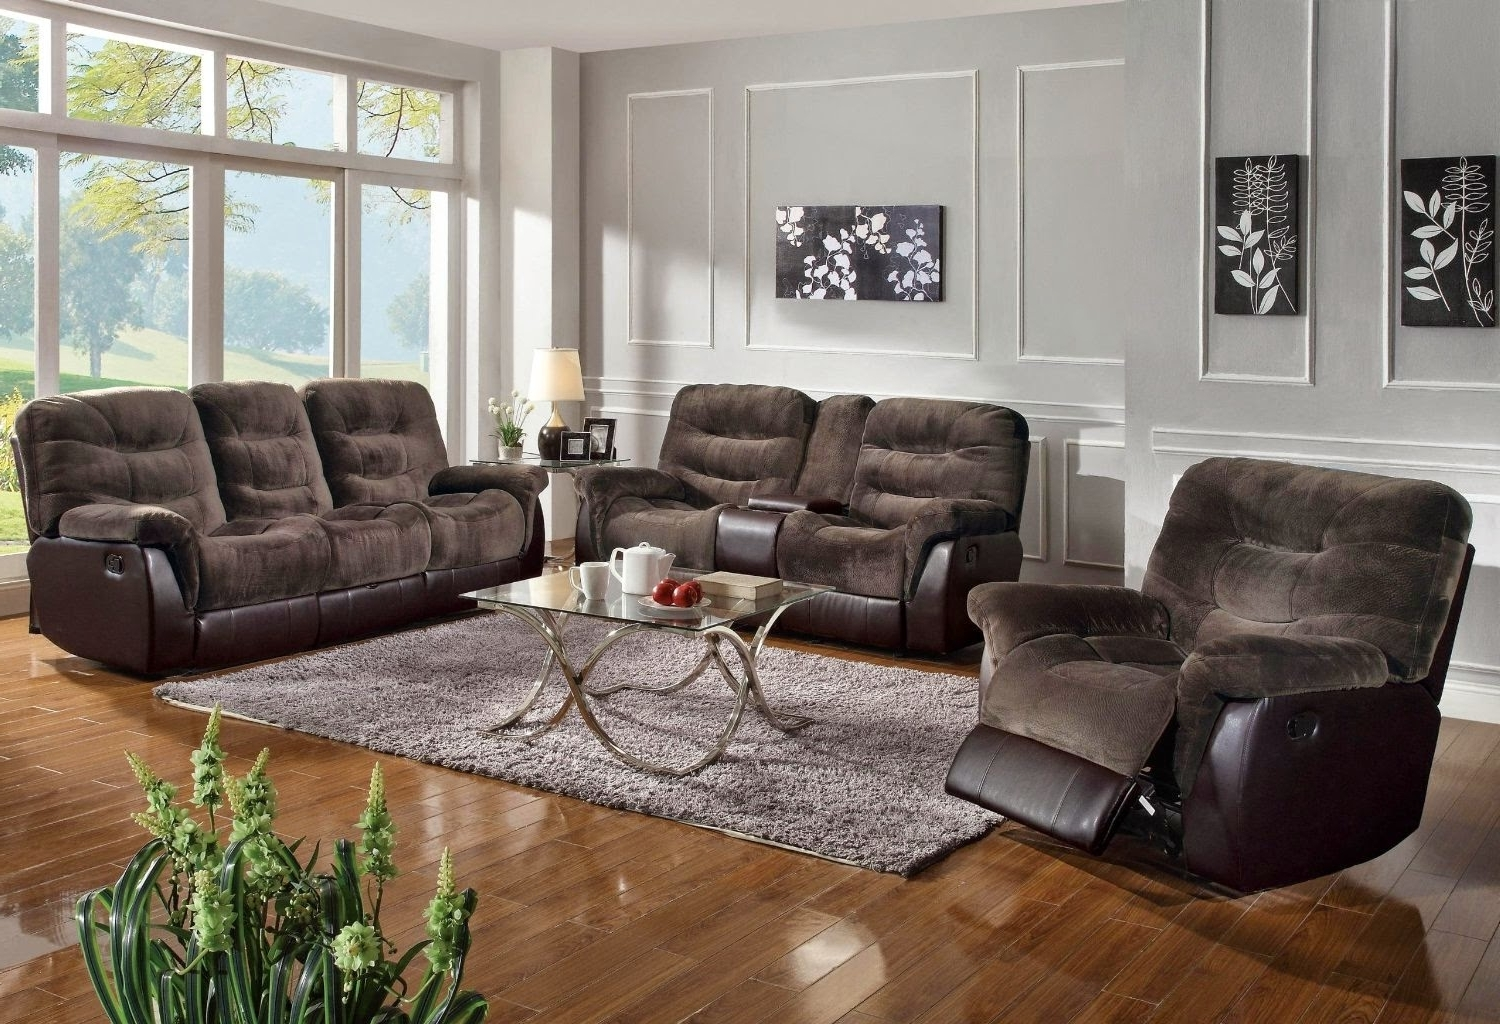 Leather Sectional Couches For Small Spaces – Saomc.co For Fashionable Sectional Sofas For Small Areas (Gallery 20 of 20)